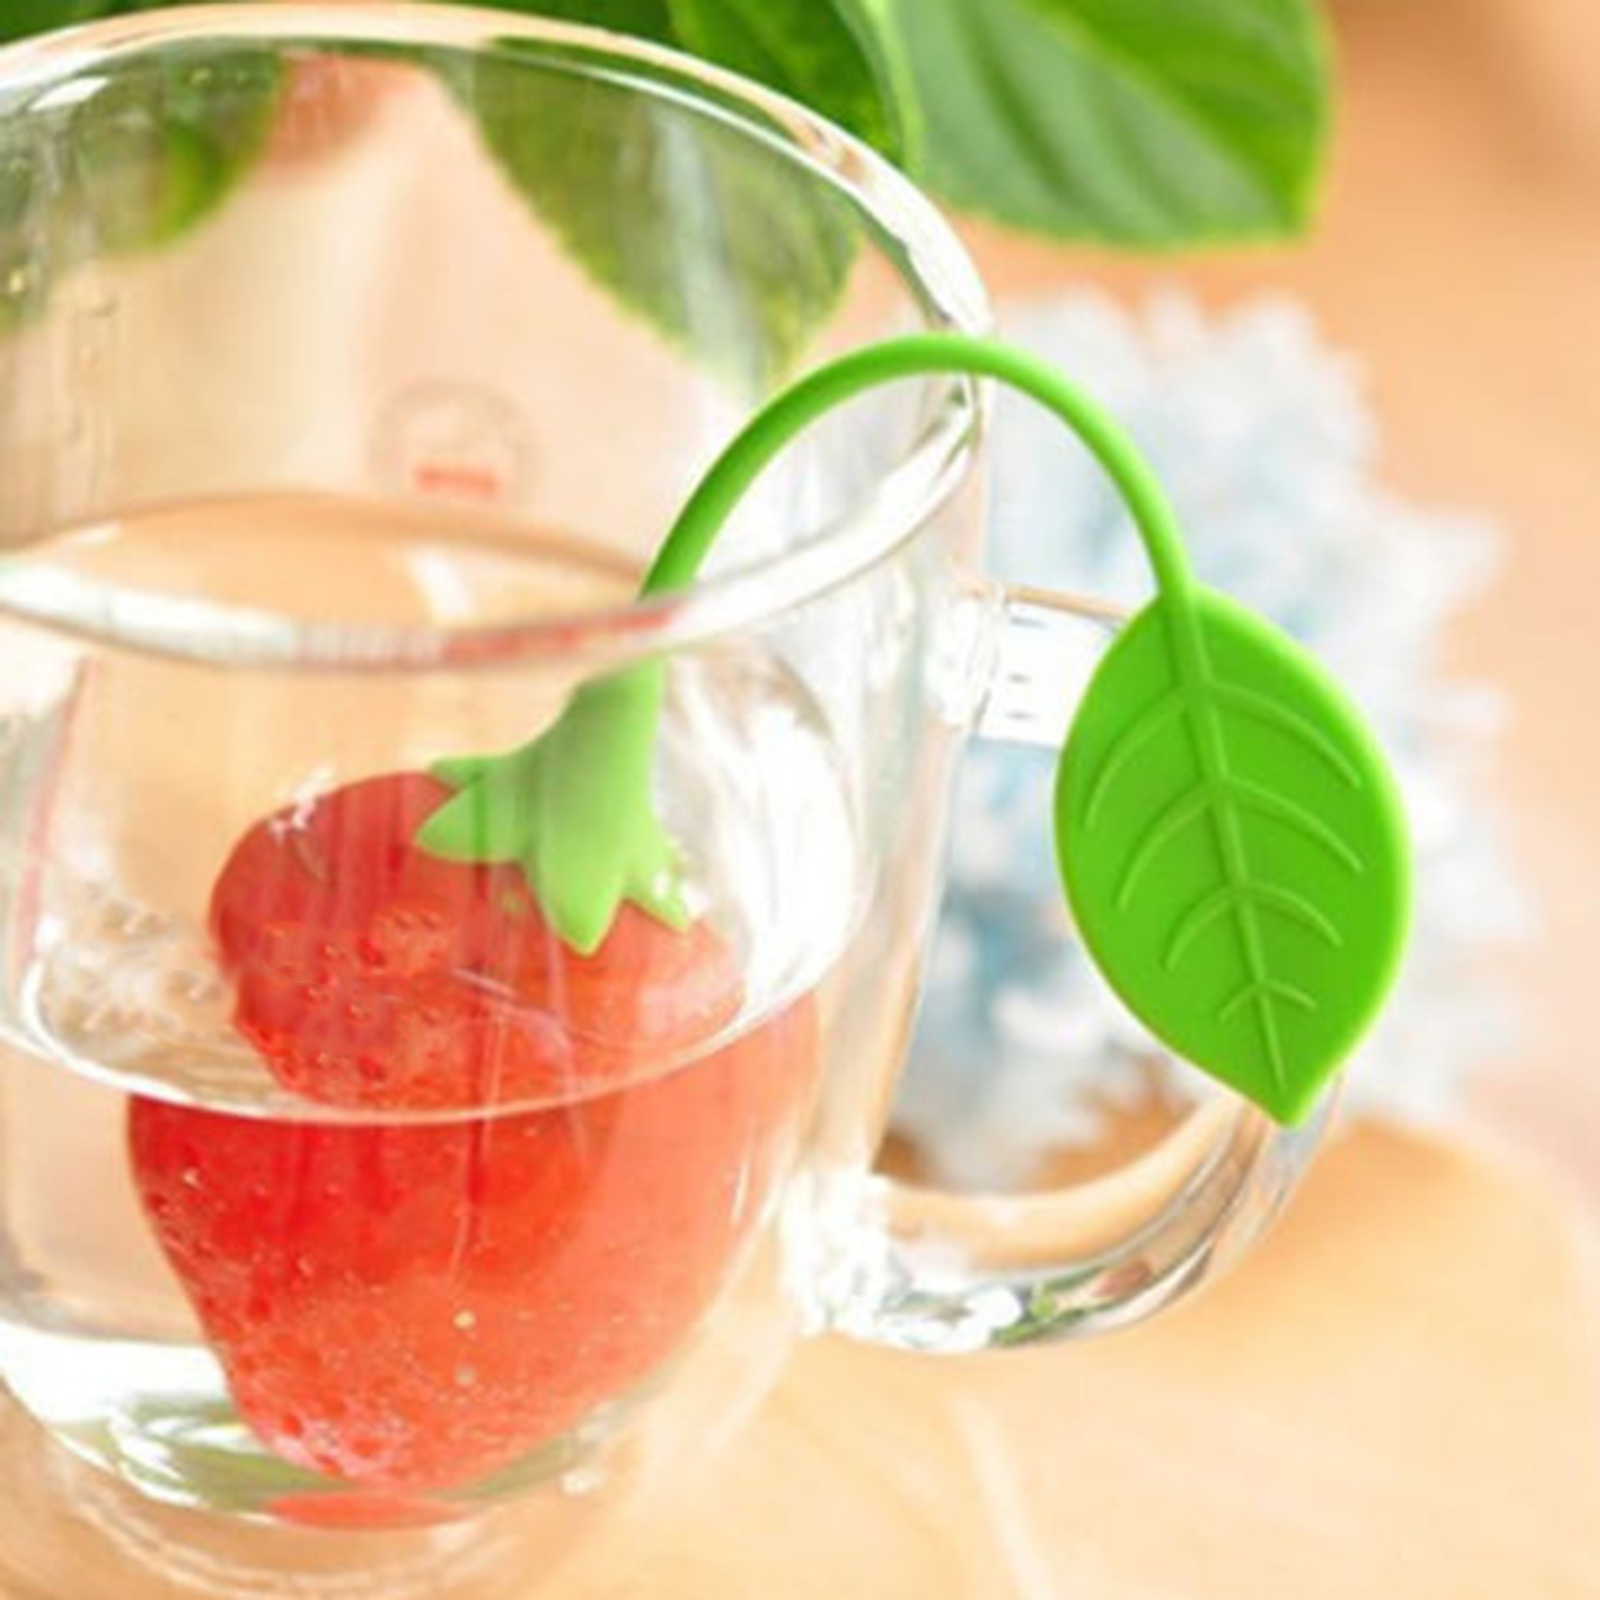 Newest Design Strawberry Filter Diffuser Cute Silicone Loose Herbal Spice Infuser  Tea Leaf Strainer Teaware Home Accessories